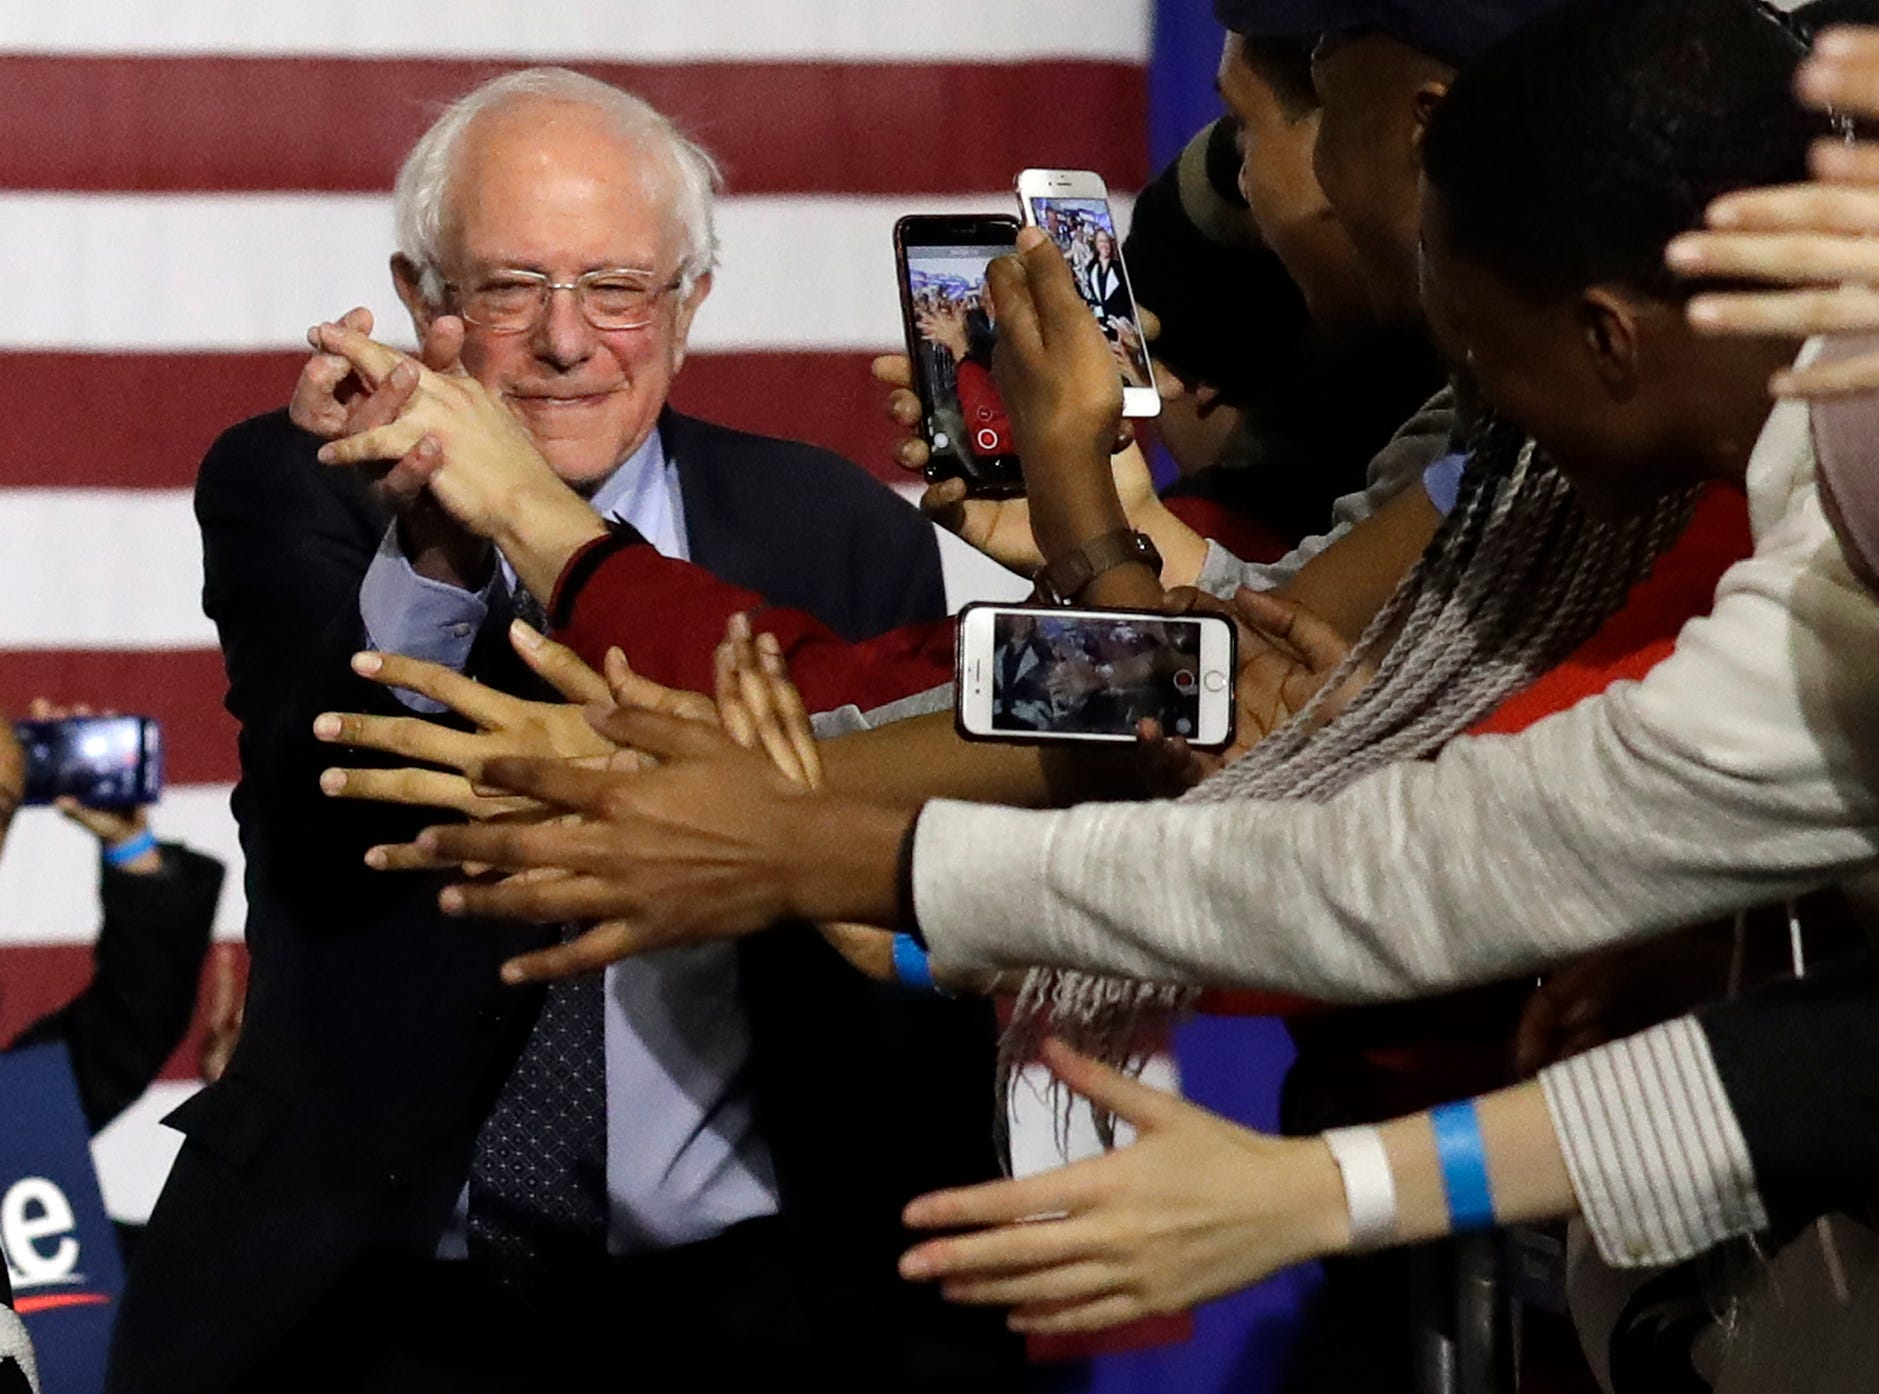 Sen. Bernie Sanders, I-Vt., left, greets supporters as they arrive for his presidential campaign event at Navy Pier in Chicago on Sunday, March 3, 2019. Over the next several weeks, Sanders will travel to Iowa, New Hampshire, South Carolina, Nevada, and California. He will then return to Burlington, Vermont, for the official launch of his campaign.